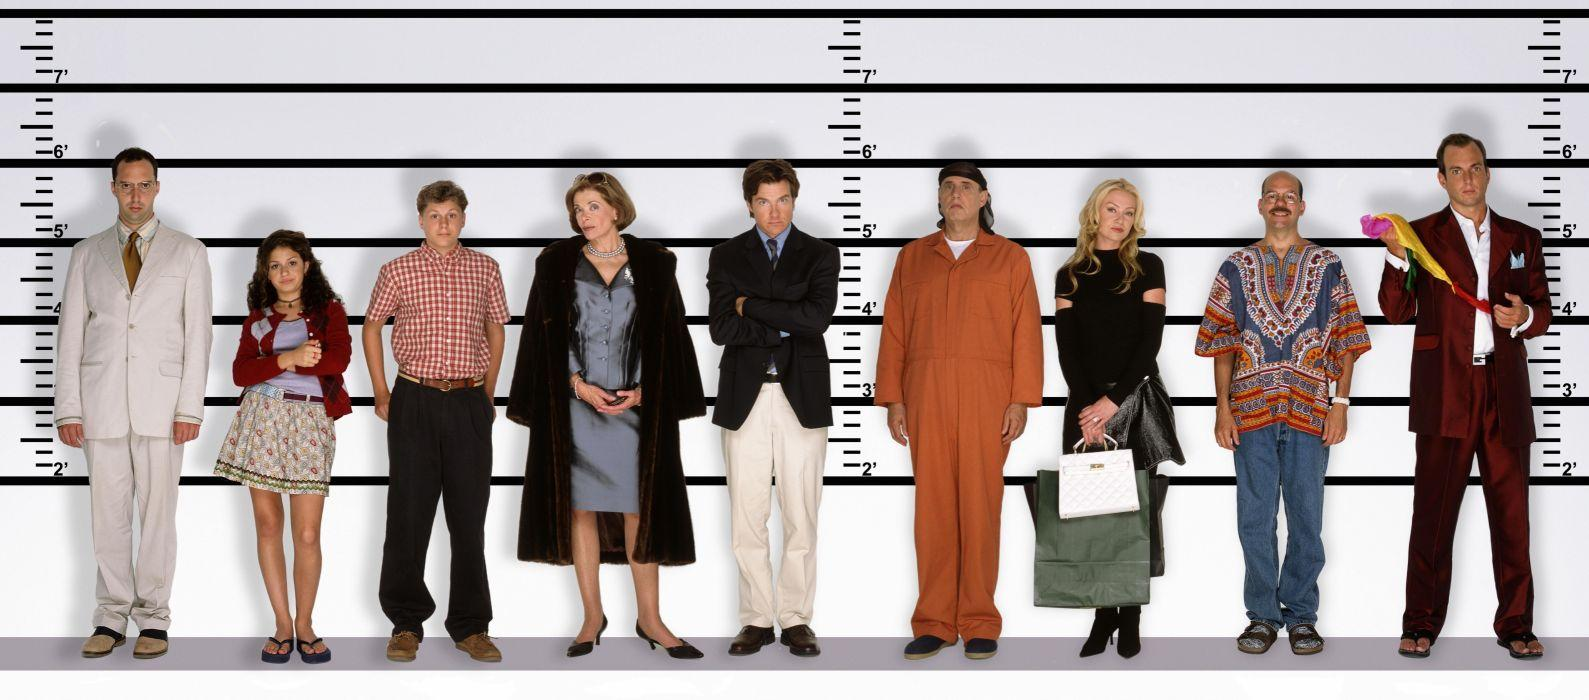 Arrested Development: Cast wallpapers